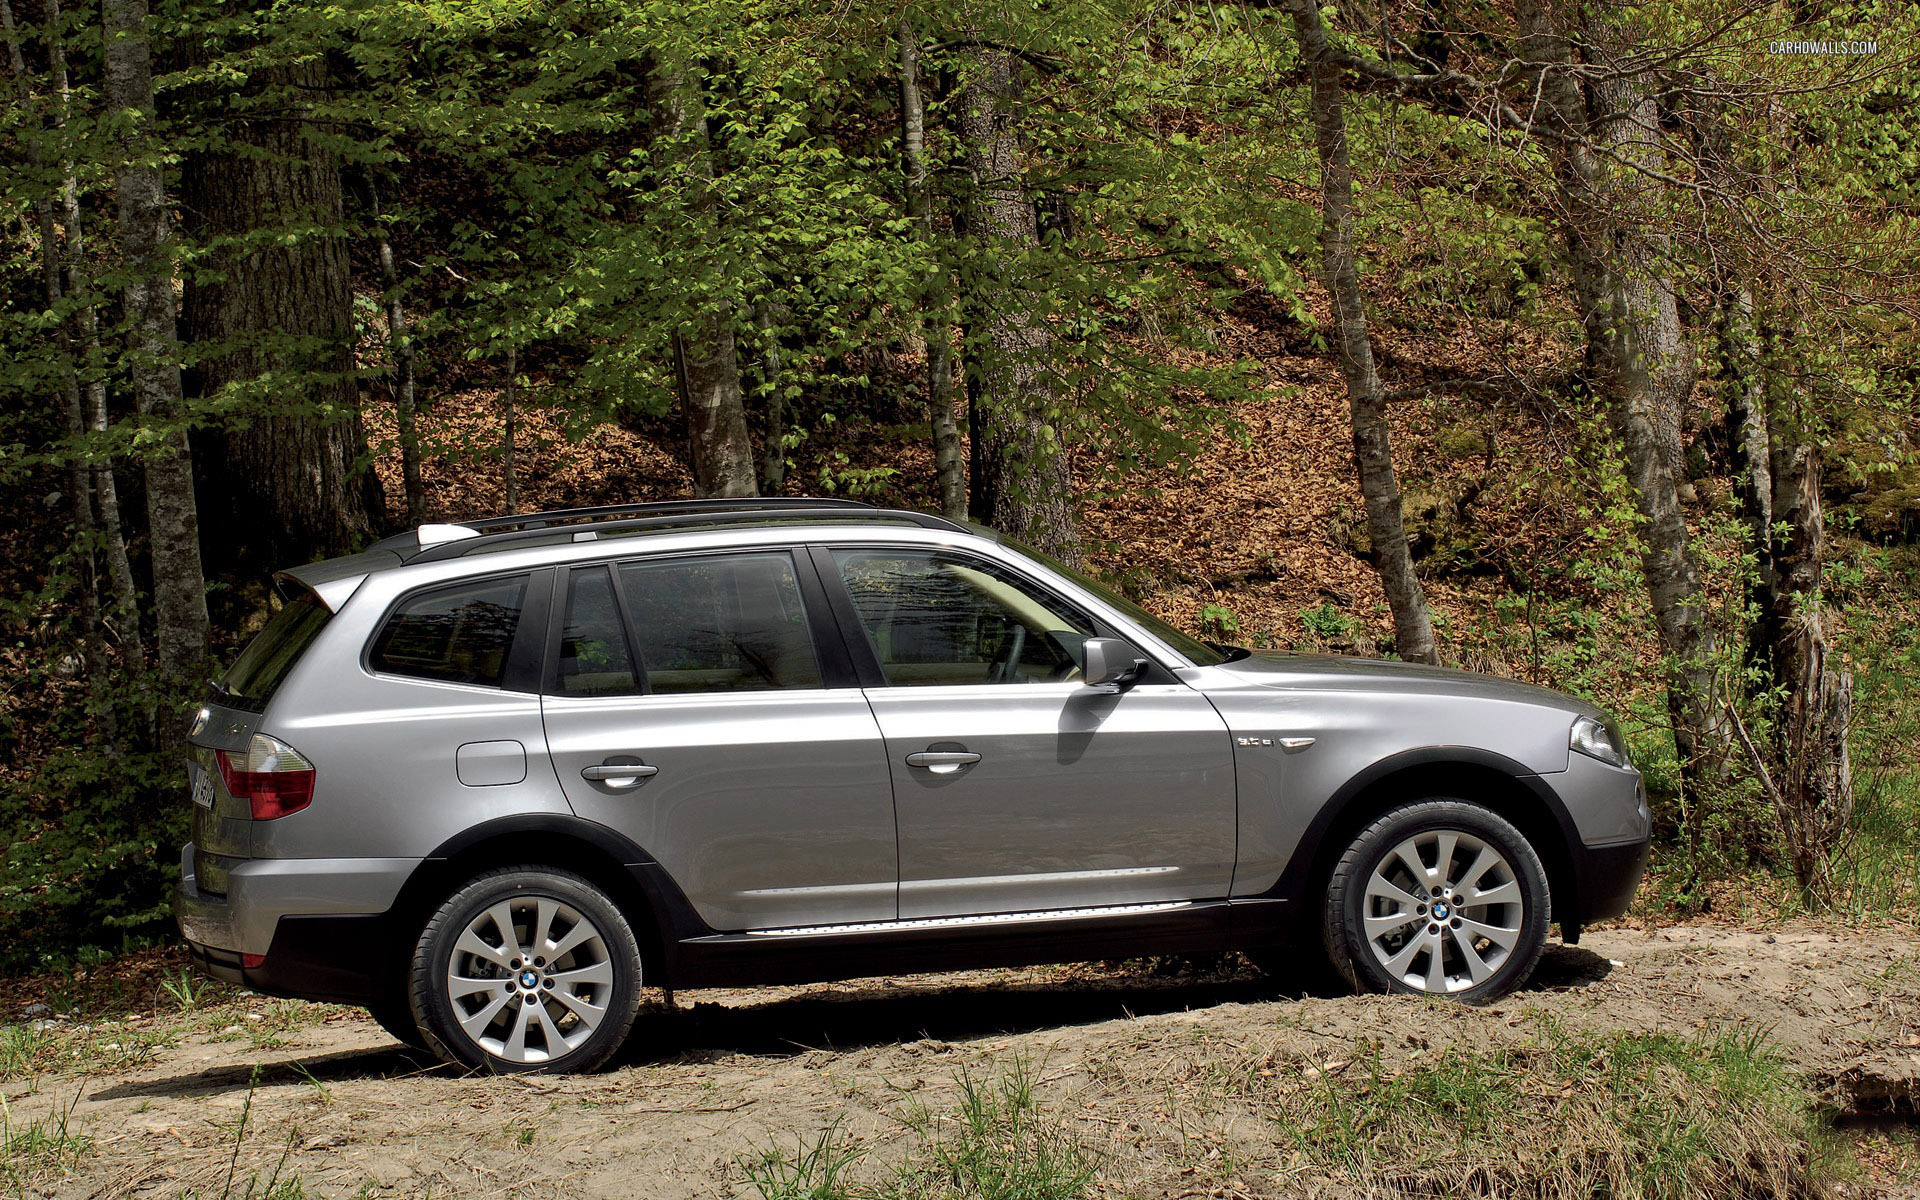 Bmw X3 Wallpapers, Pictures, Images